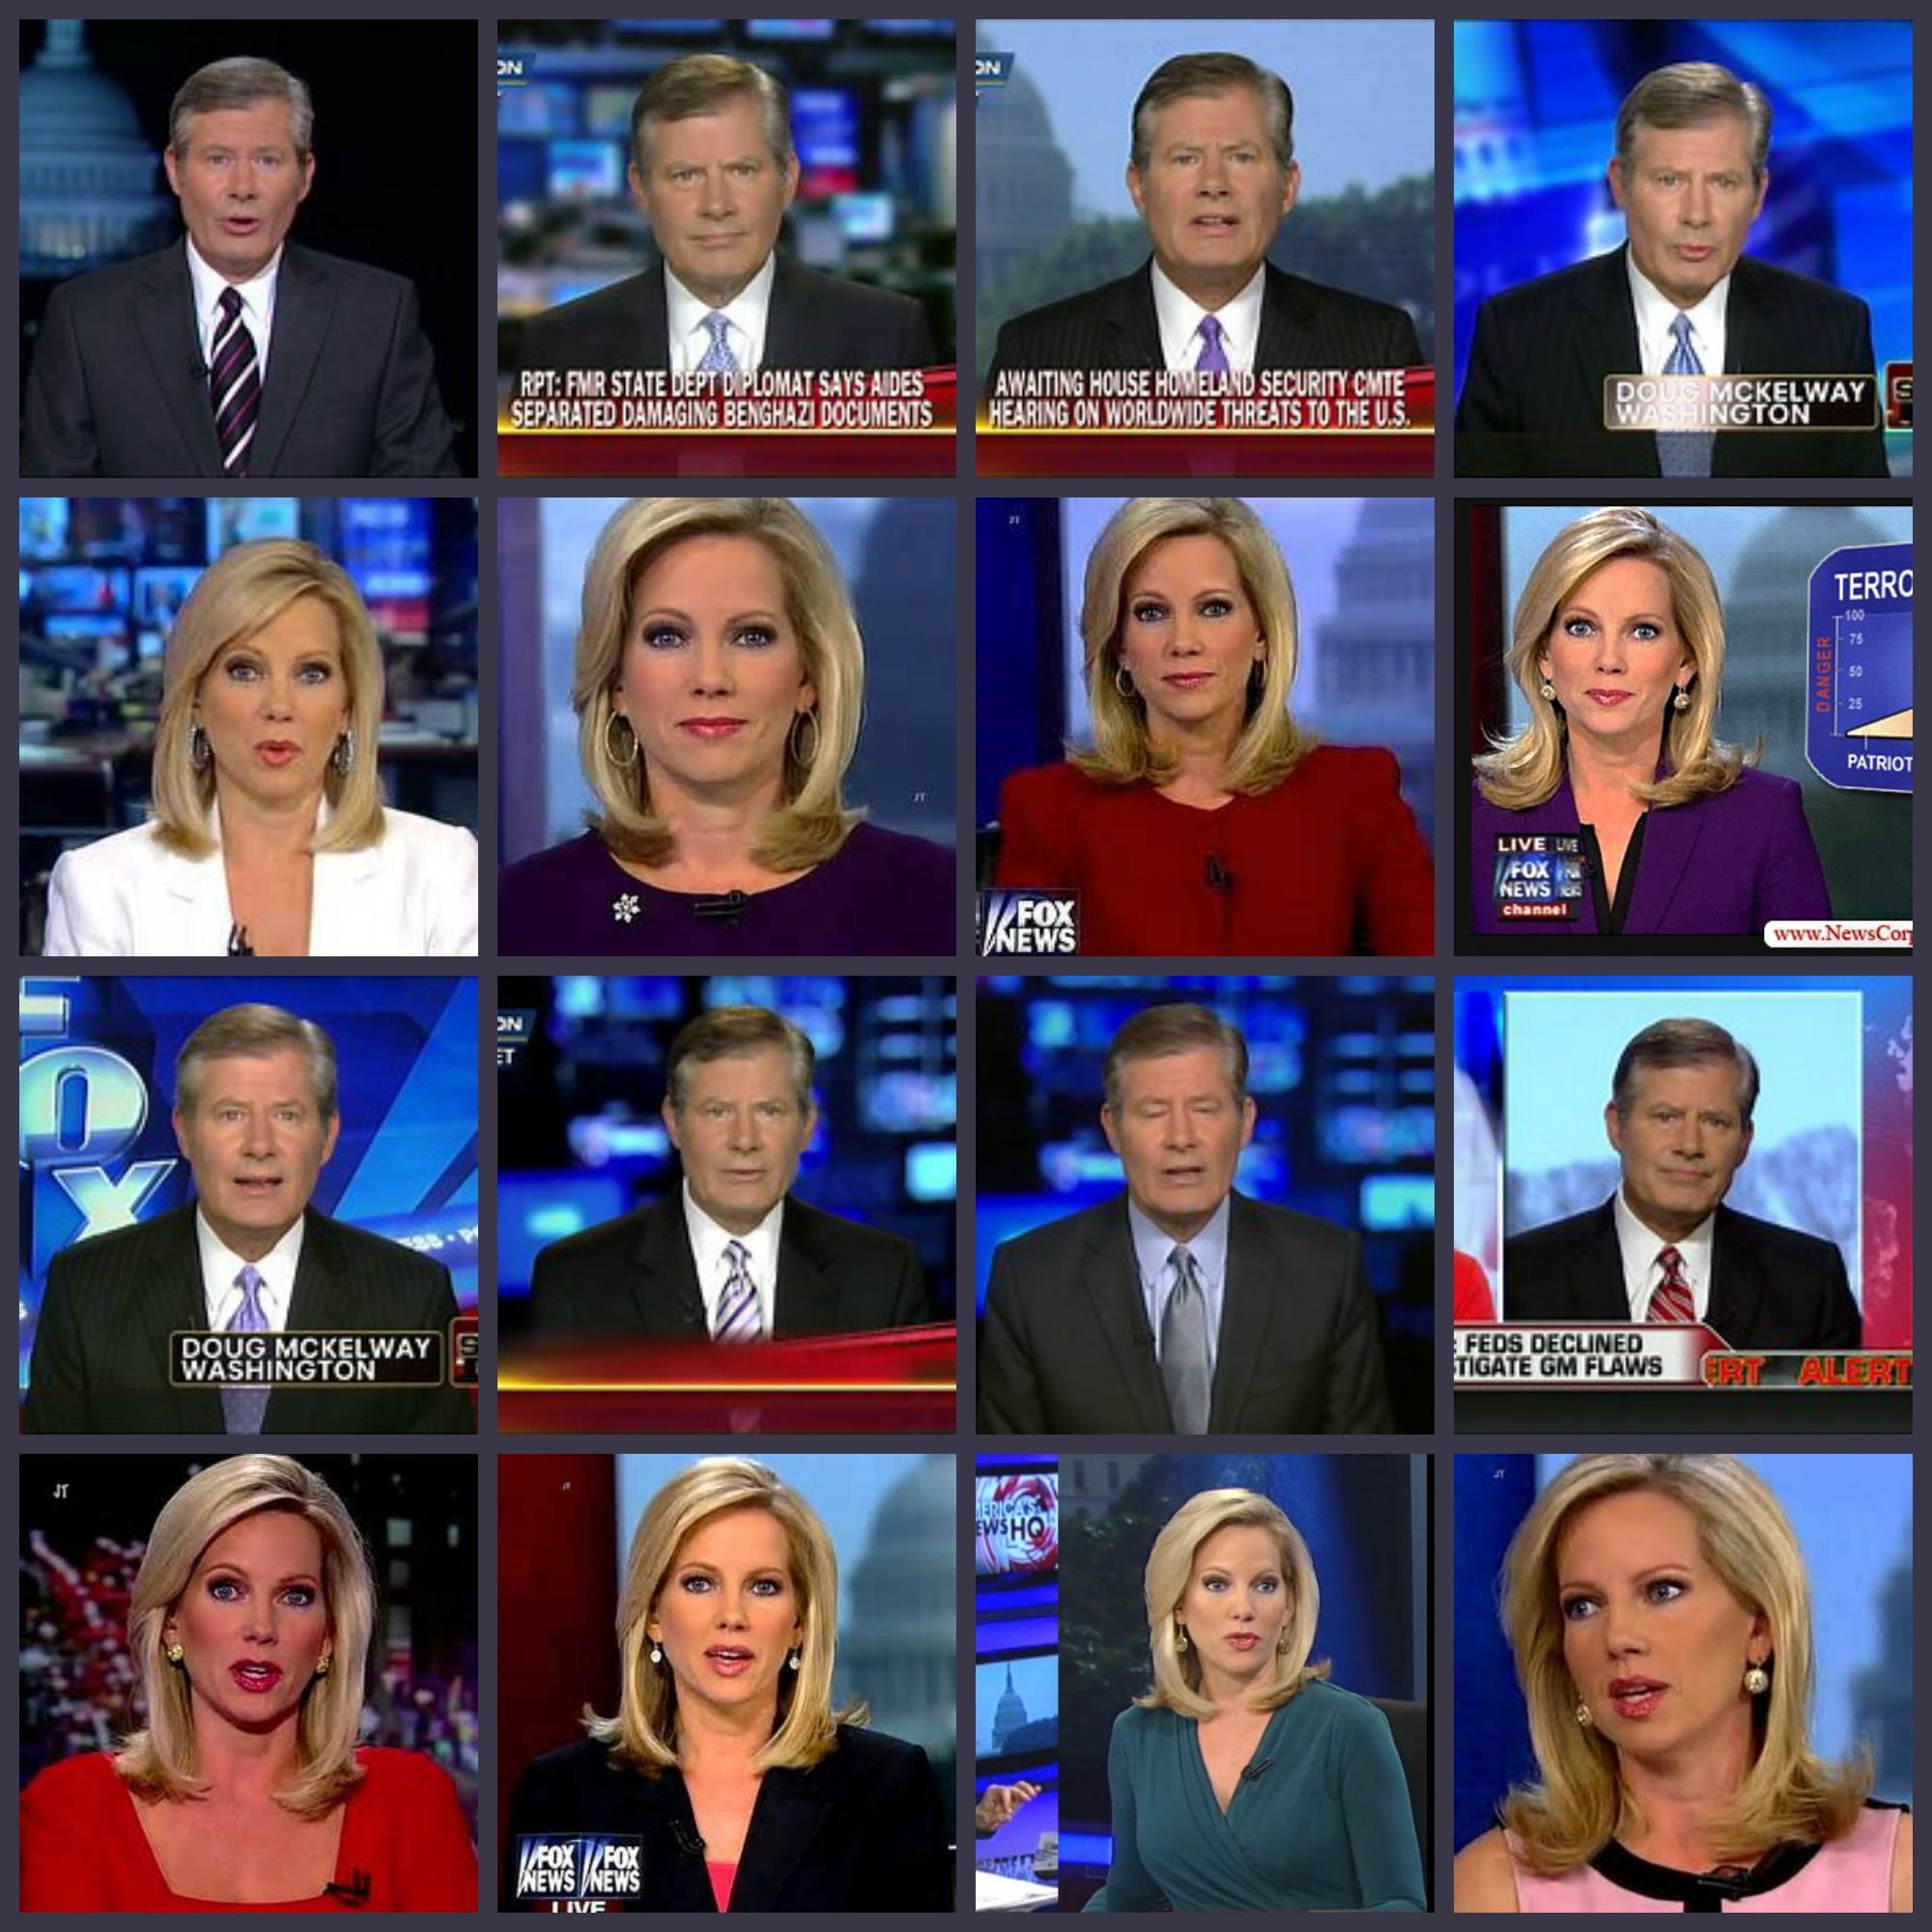 My Two Favorite Fnc People Shannon Bream Amp Doug Mckelway